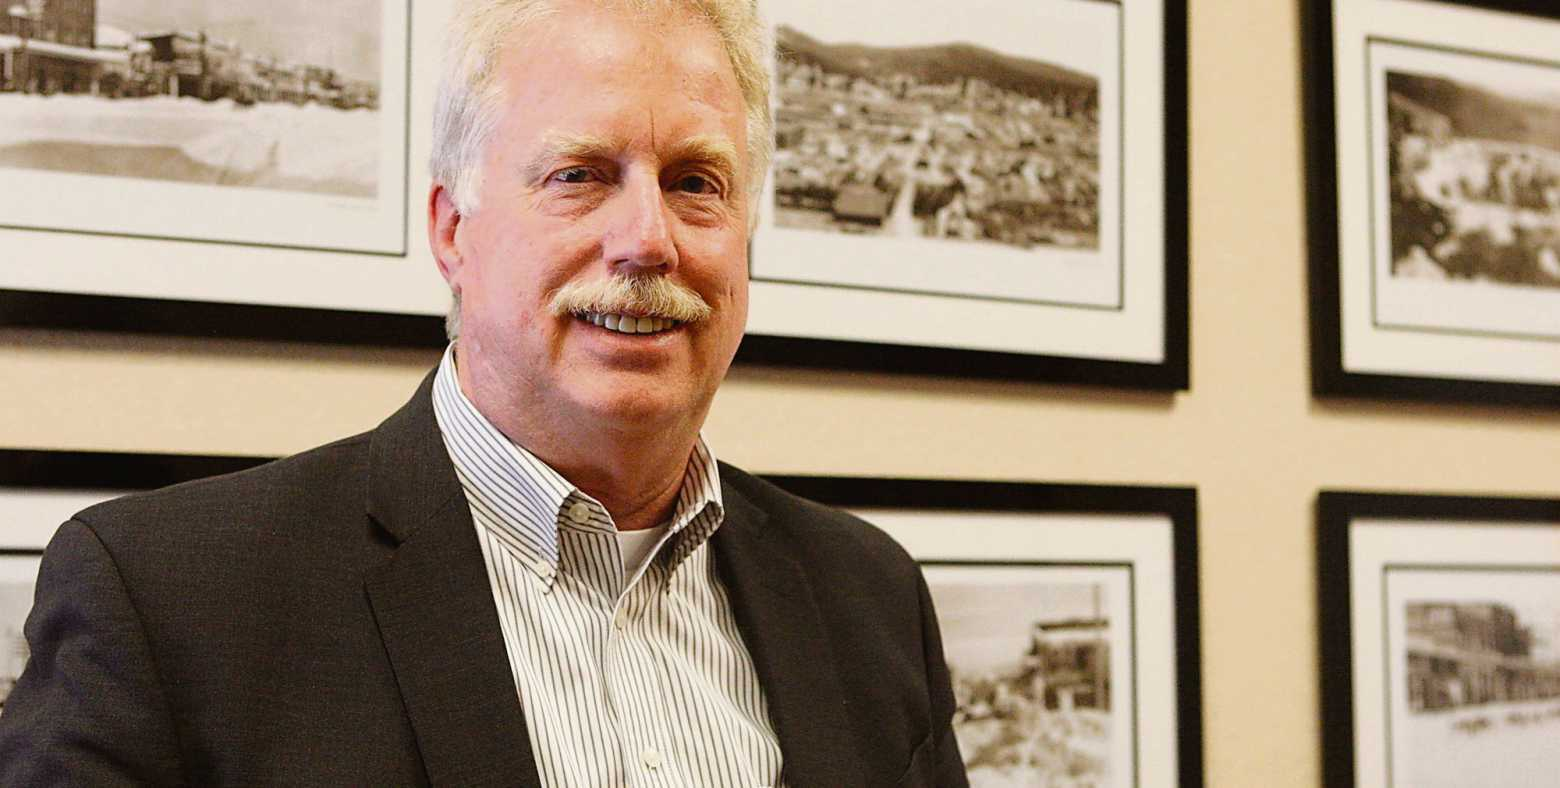 Harry Weis, President & CEO of Tahoe Forest Health System